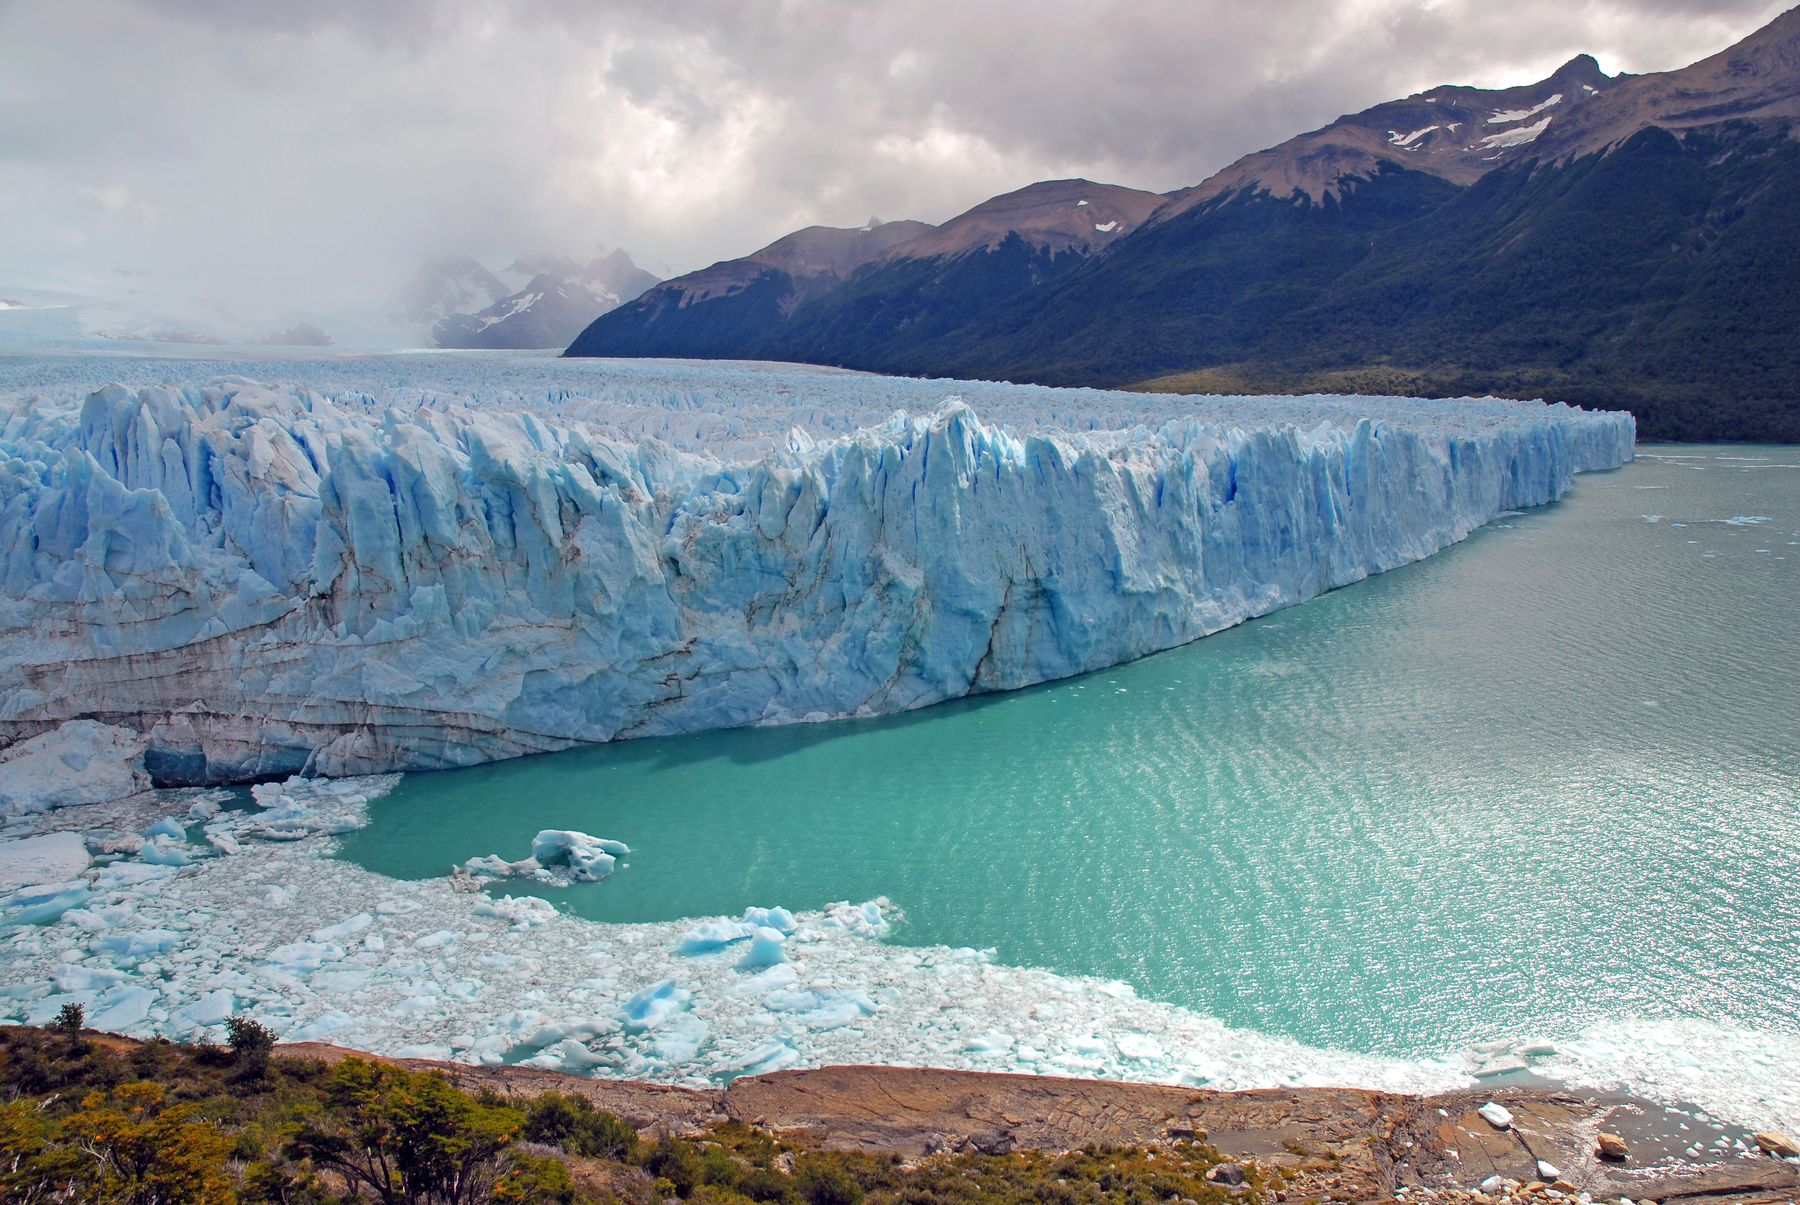 Los Glaciares National Park in Argentina is one of the lesser known world wonders